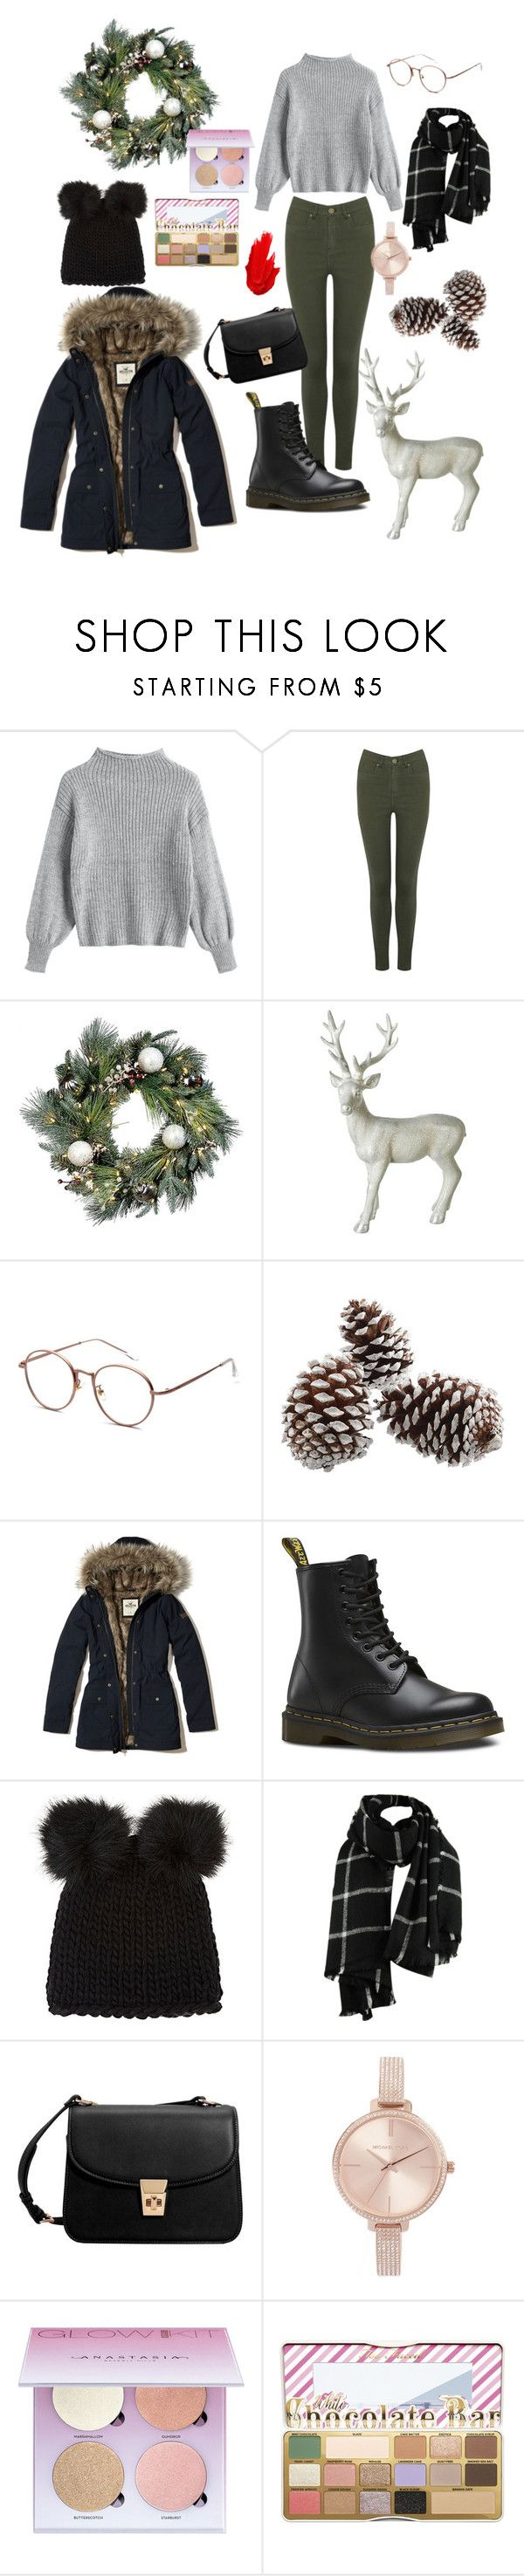 """Christmas Day outfit"" by amandakatherine12 ❤ liked on Polyvore featuring Oasis, Improvements, Parlane, Hollister Co., Dr. Martens, Barneys New York, MANGO, Michael Kors, Anastasia Beverly Hills and Too Faced Cosmetics"